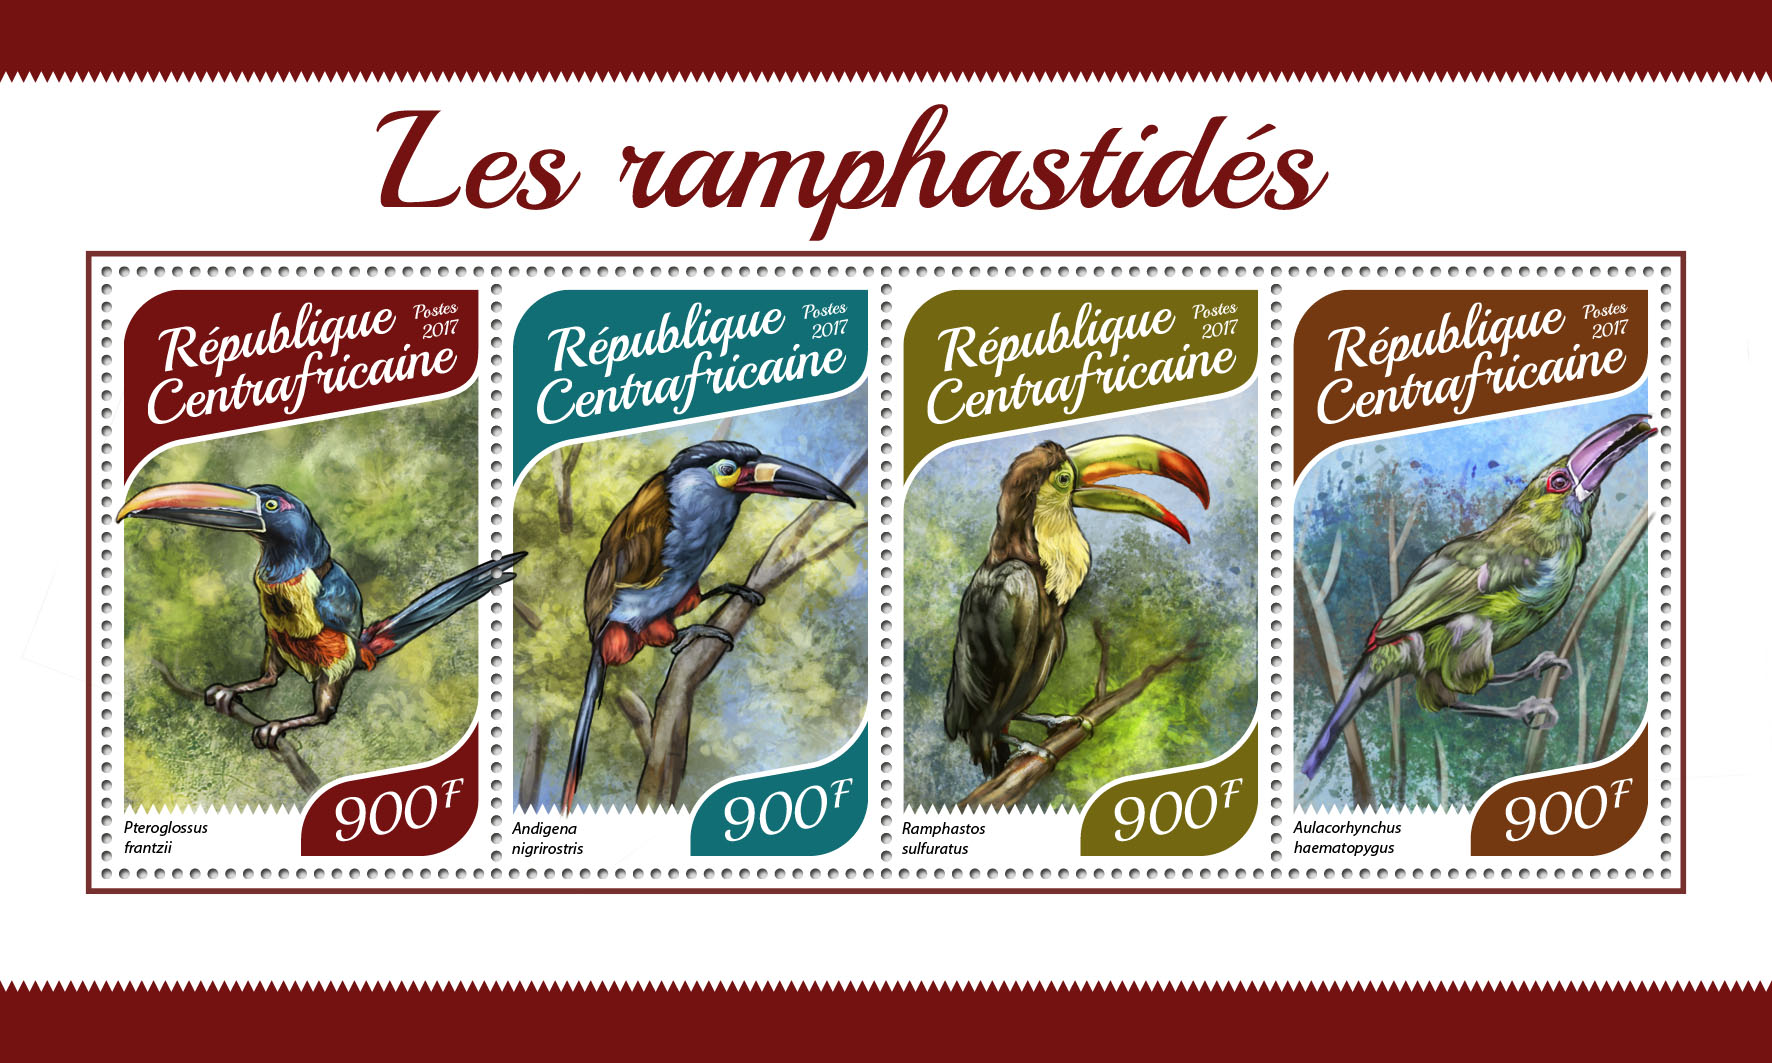 Toucan - Issue of Central African republic postage stamps